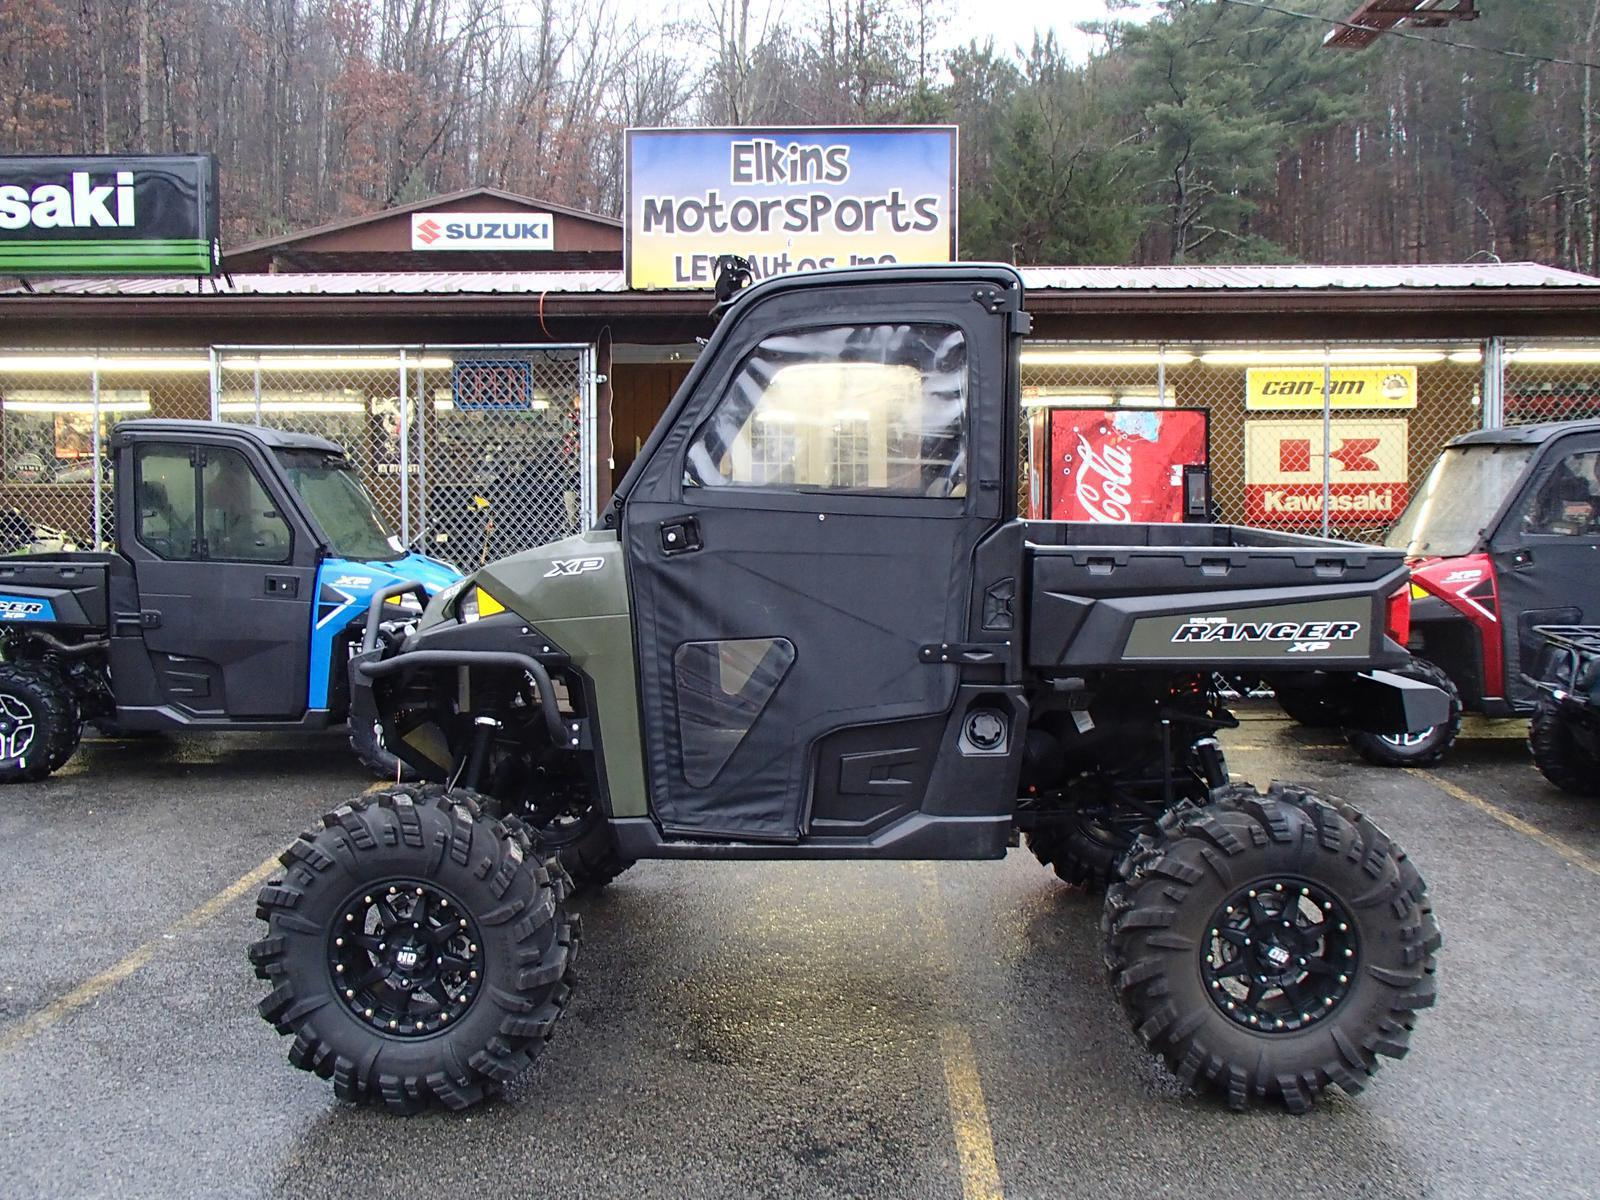 2013 Polaris Industries RANGER XP 1000 for sale in Elkins, WV